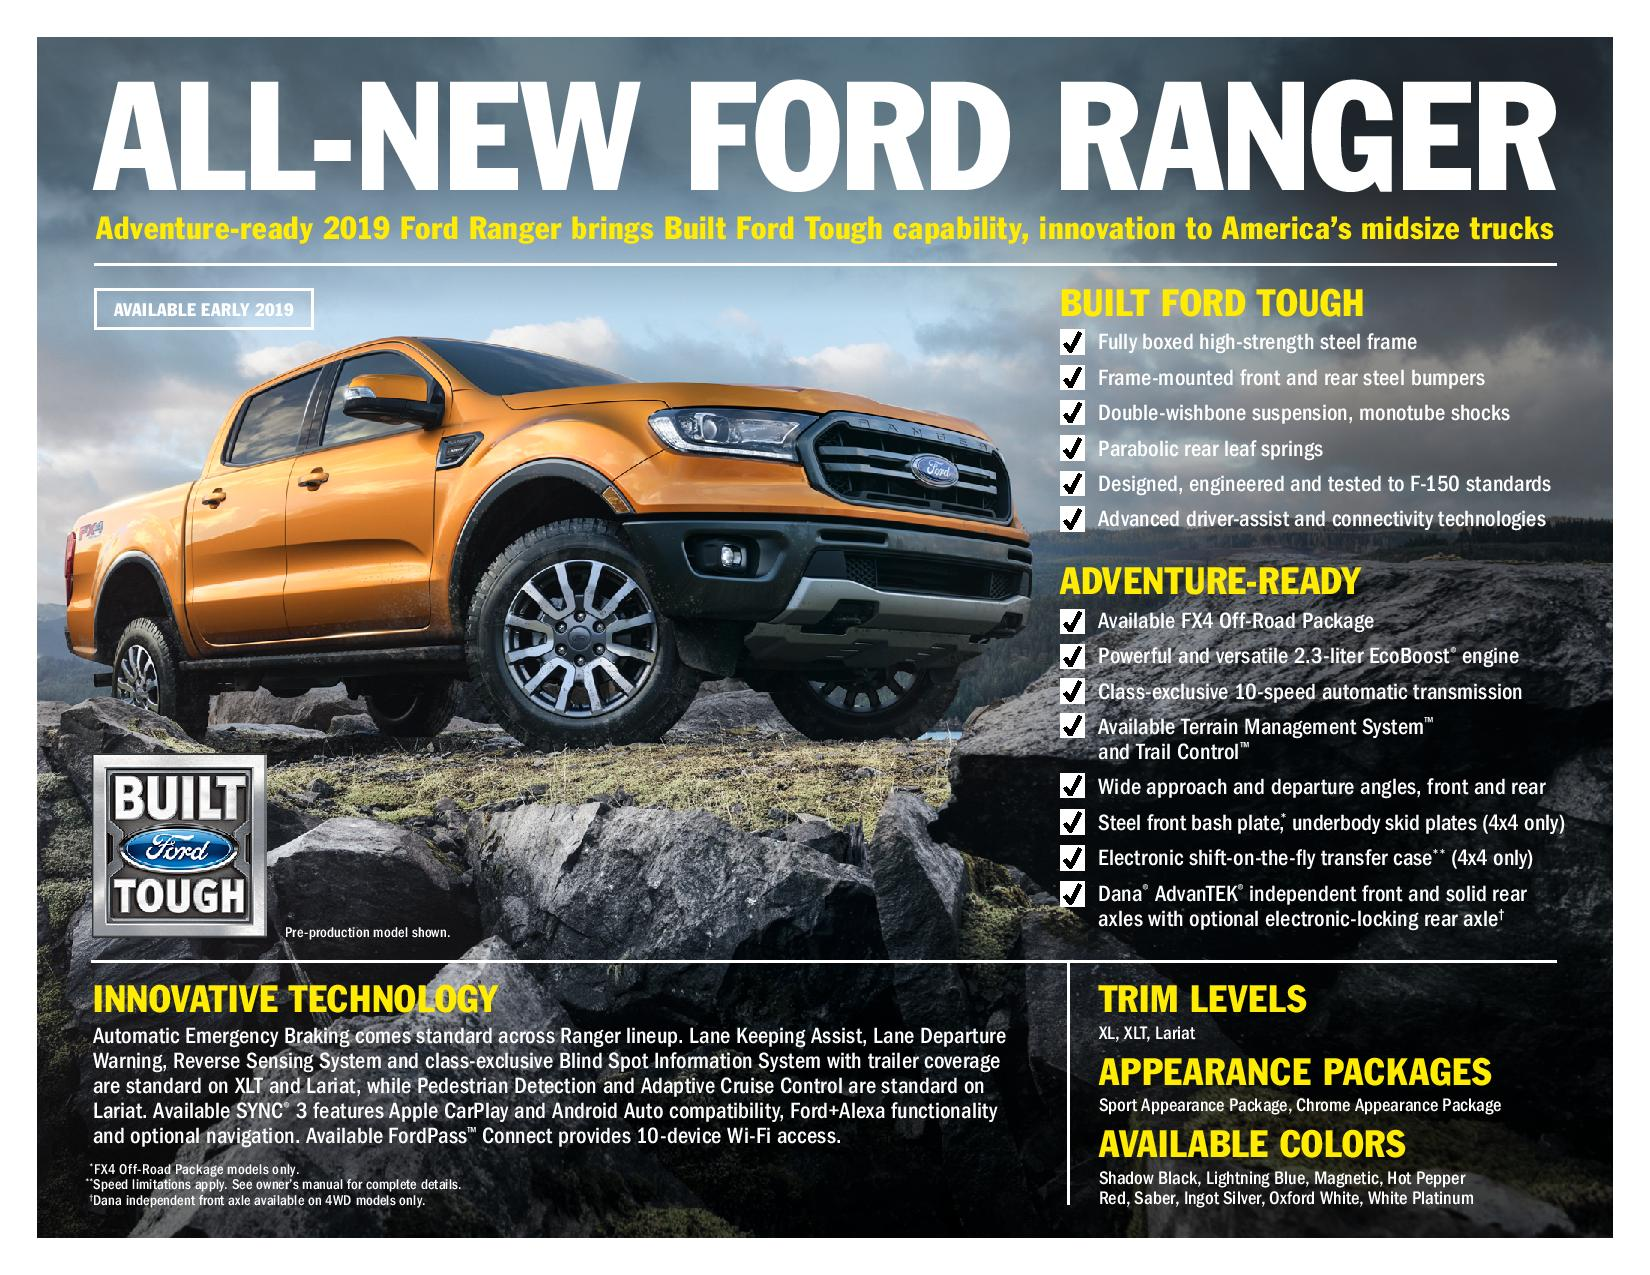 Ford Ranger To Feature Technology in the Body of a Midsize Truck